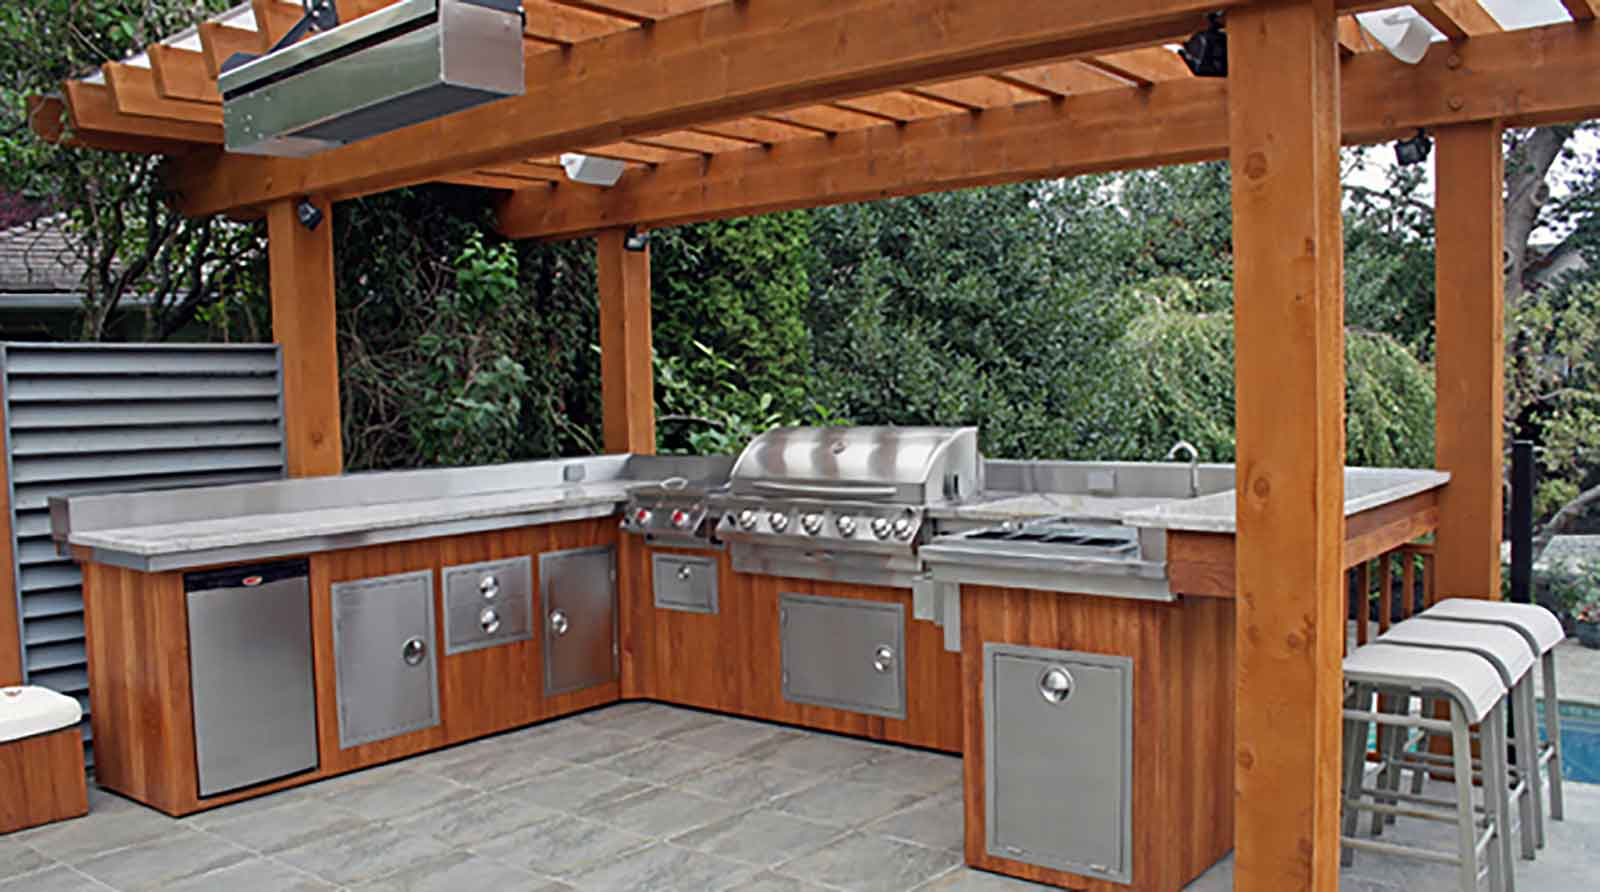 Custom Designed Outdoor Kitchens  Azuro Concepts. Kitchen Accessories Design. Modern L Shaped Kitchen Designs With Island. Design Own Kitchen Layout. Home Kitchen Design Software. Design For A Small Kitchen. Latest In Kitchen Design. Kitchen Design Commercial. Interior Design For Open Kitchen